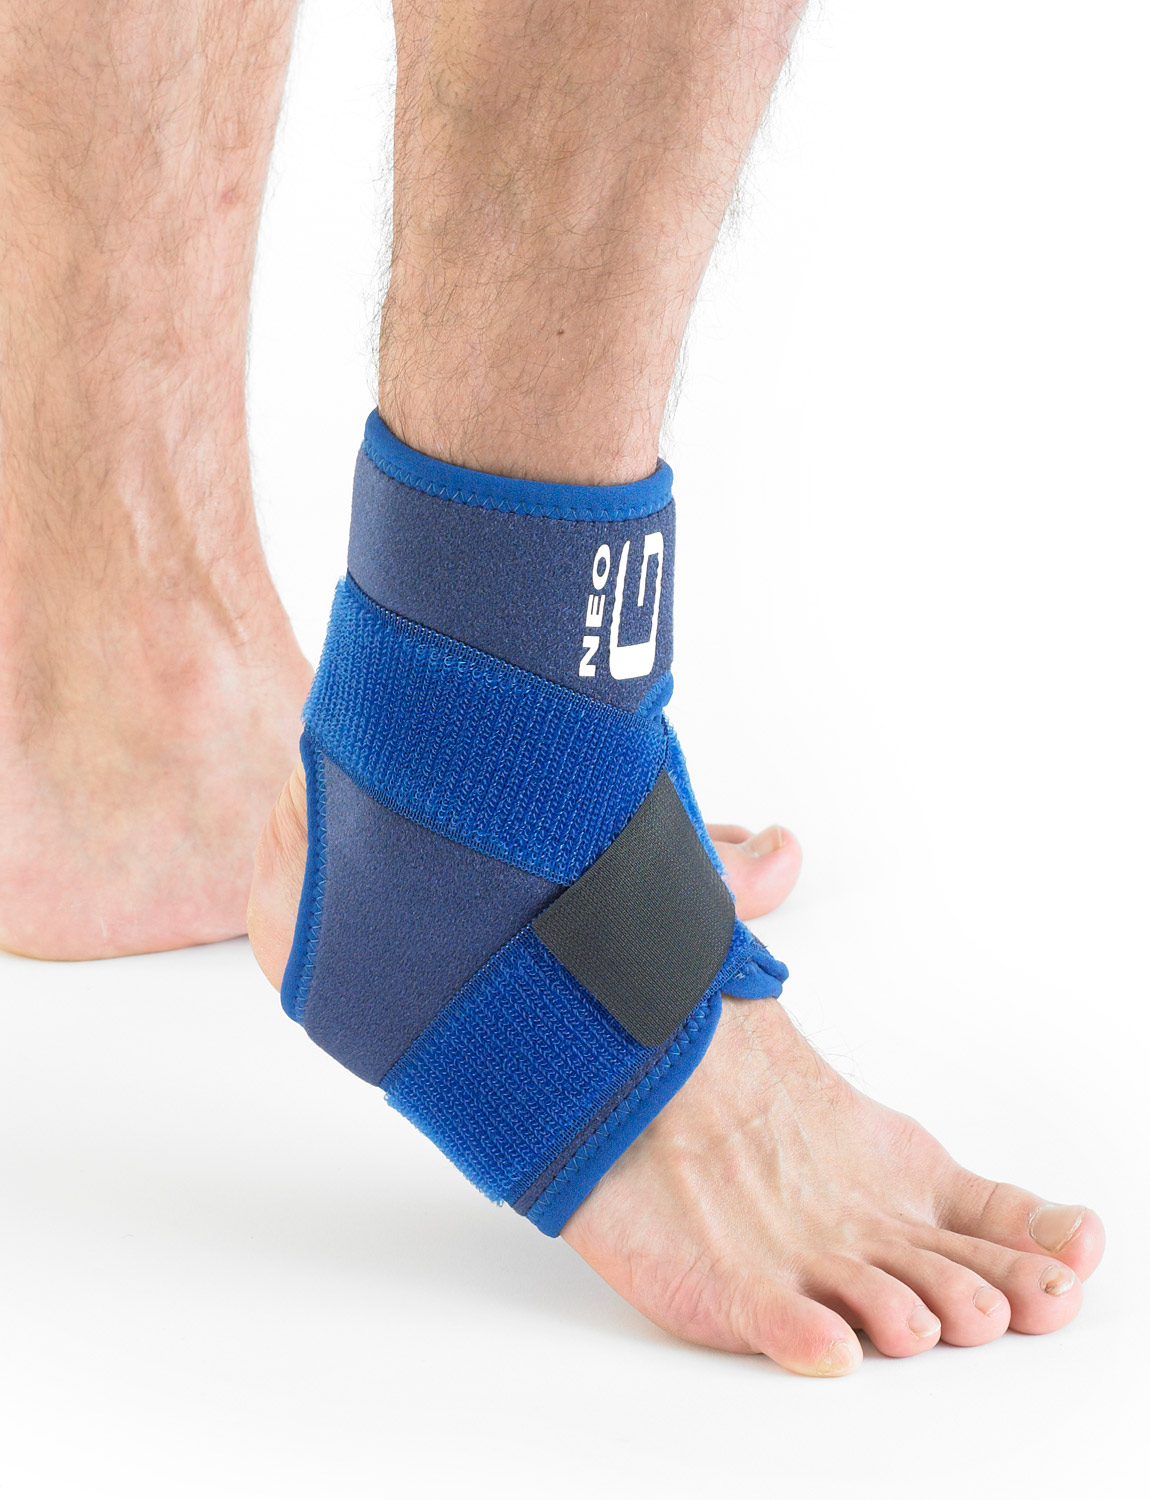 887 - ANKLE SUPPORT WITH FIGURE OF 8 STRAP  The support helps to reduce excessive planterflexion as well as inversion and eversion of the ankle all of which are associated with ligamentous injuries and instability of the ankle.